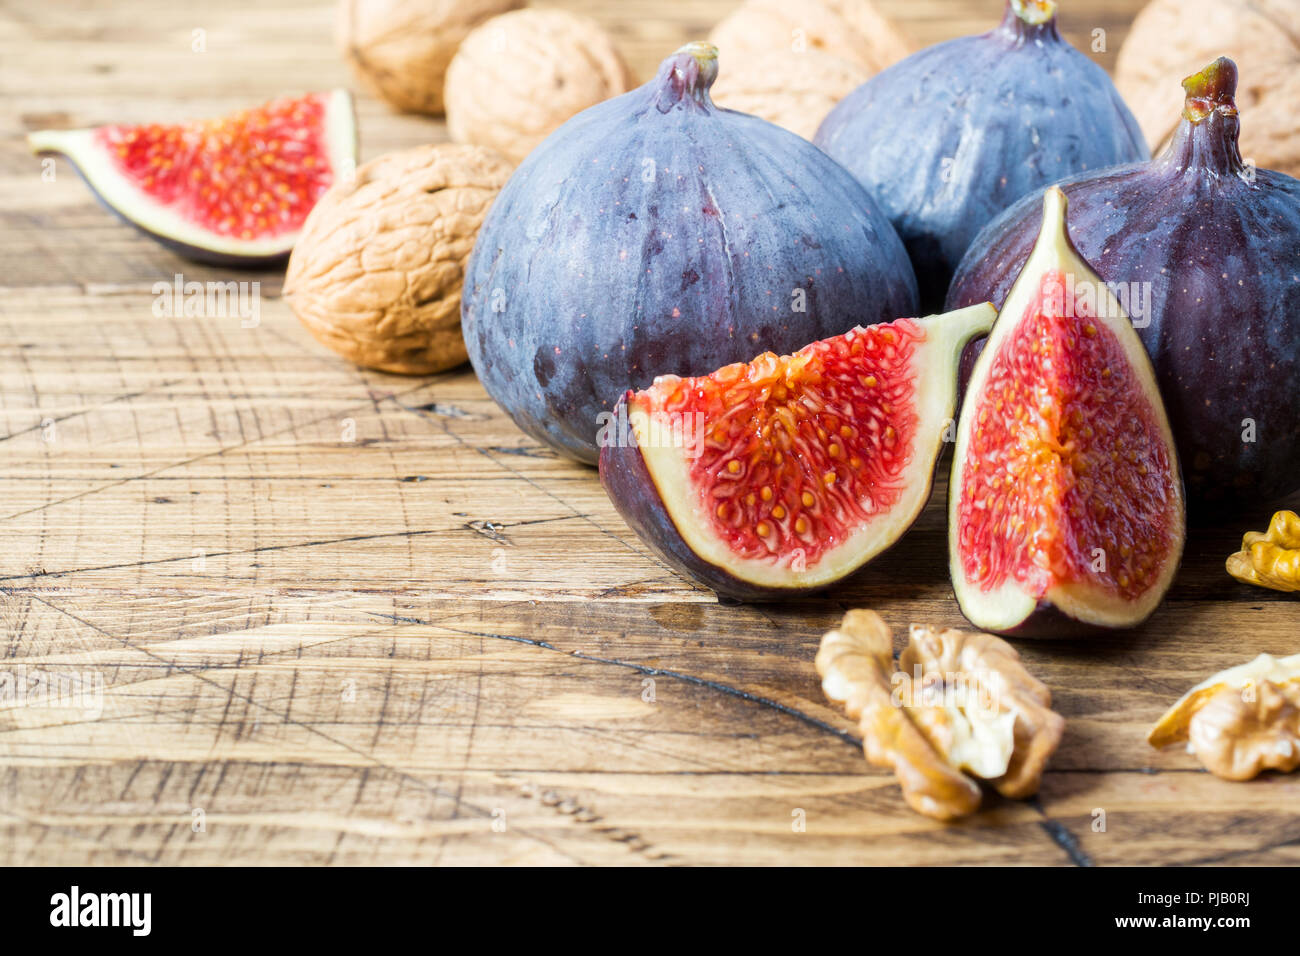 Fresh figs whole and cut with walnut kernels on a wooden old background - Stock Image